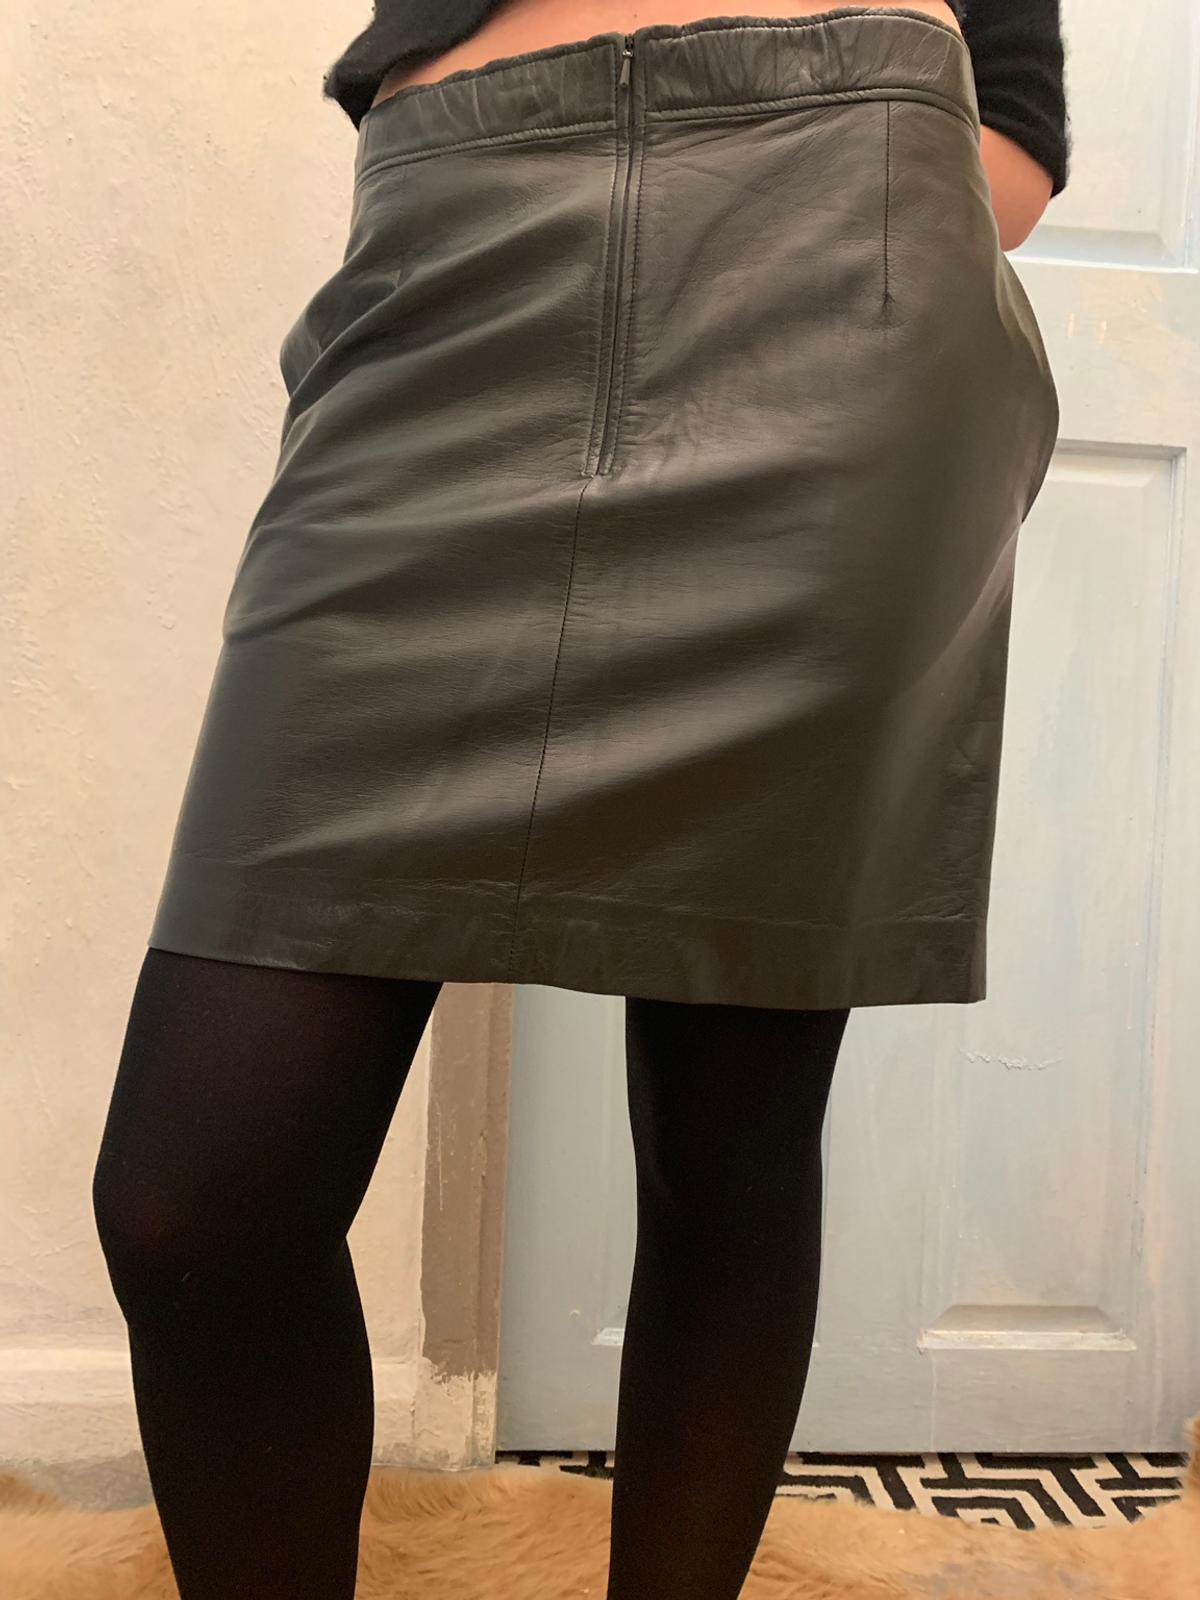 best deals on strong packing 2019 authentic Celine black leather knee skirt